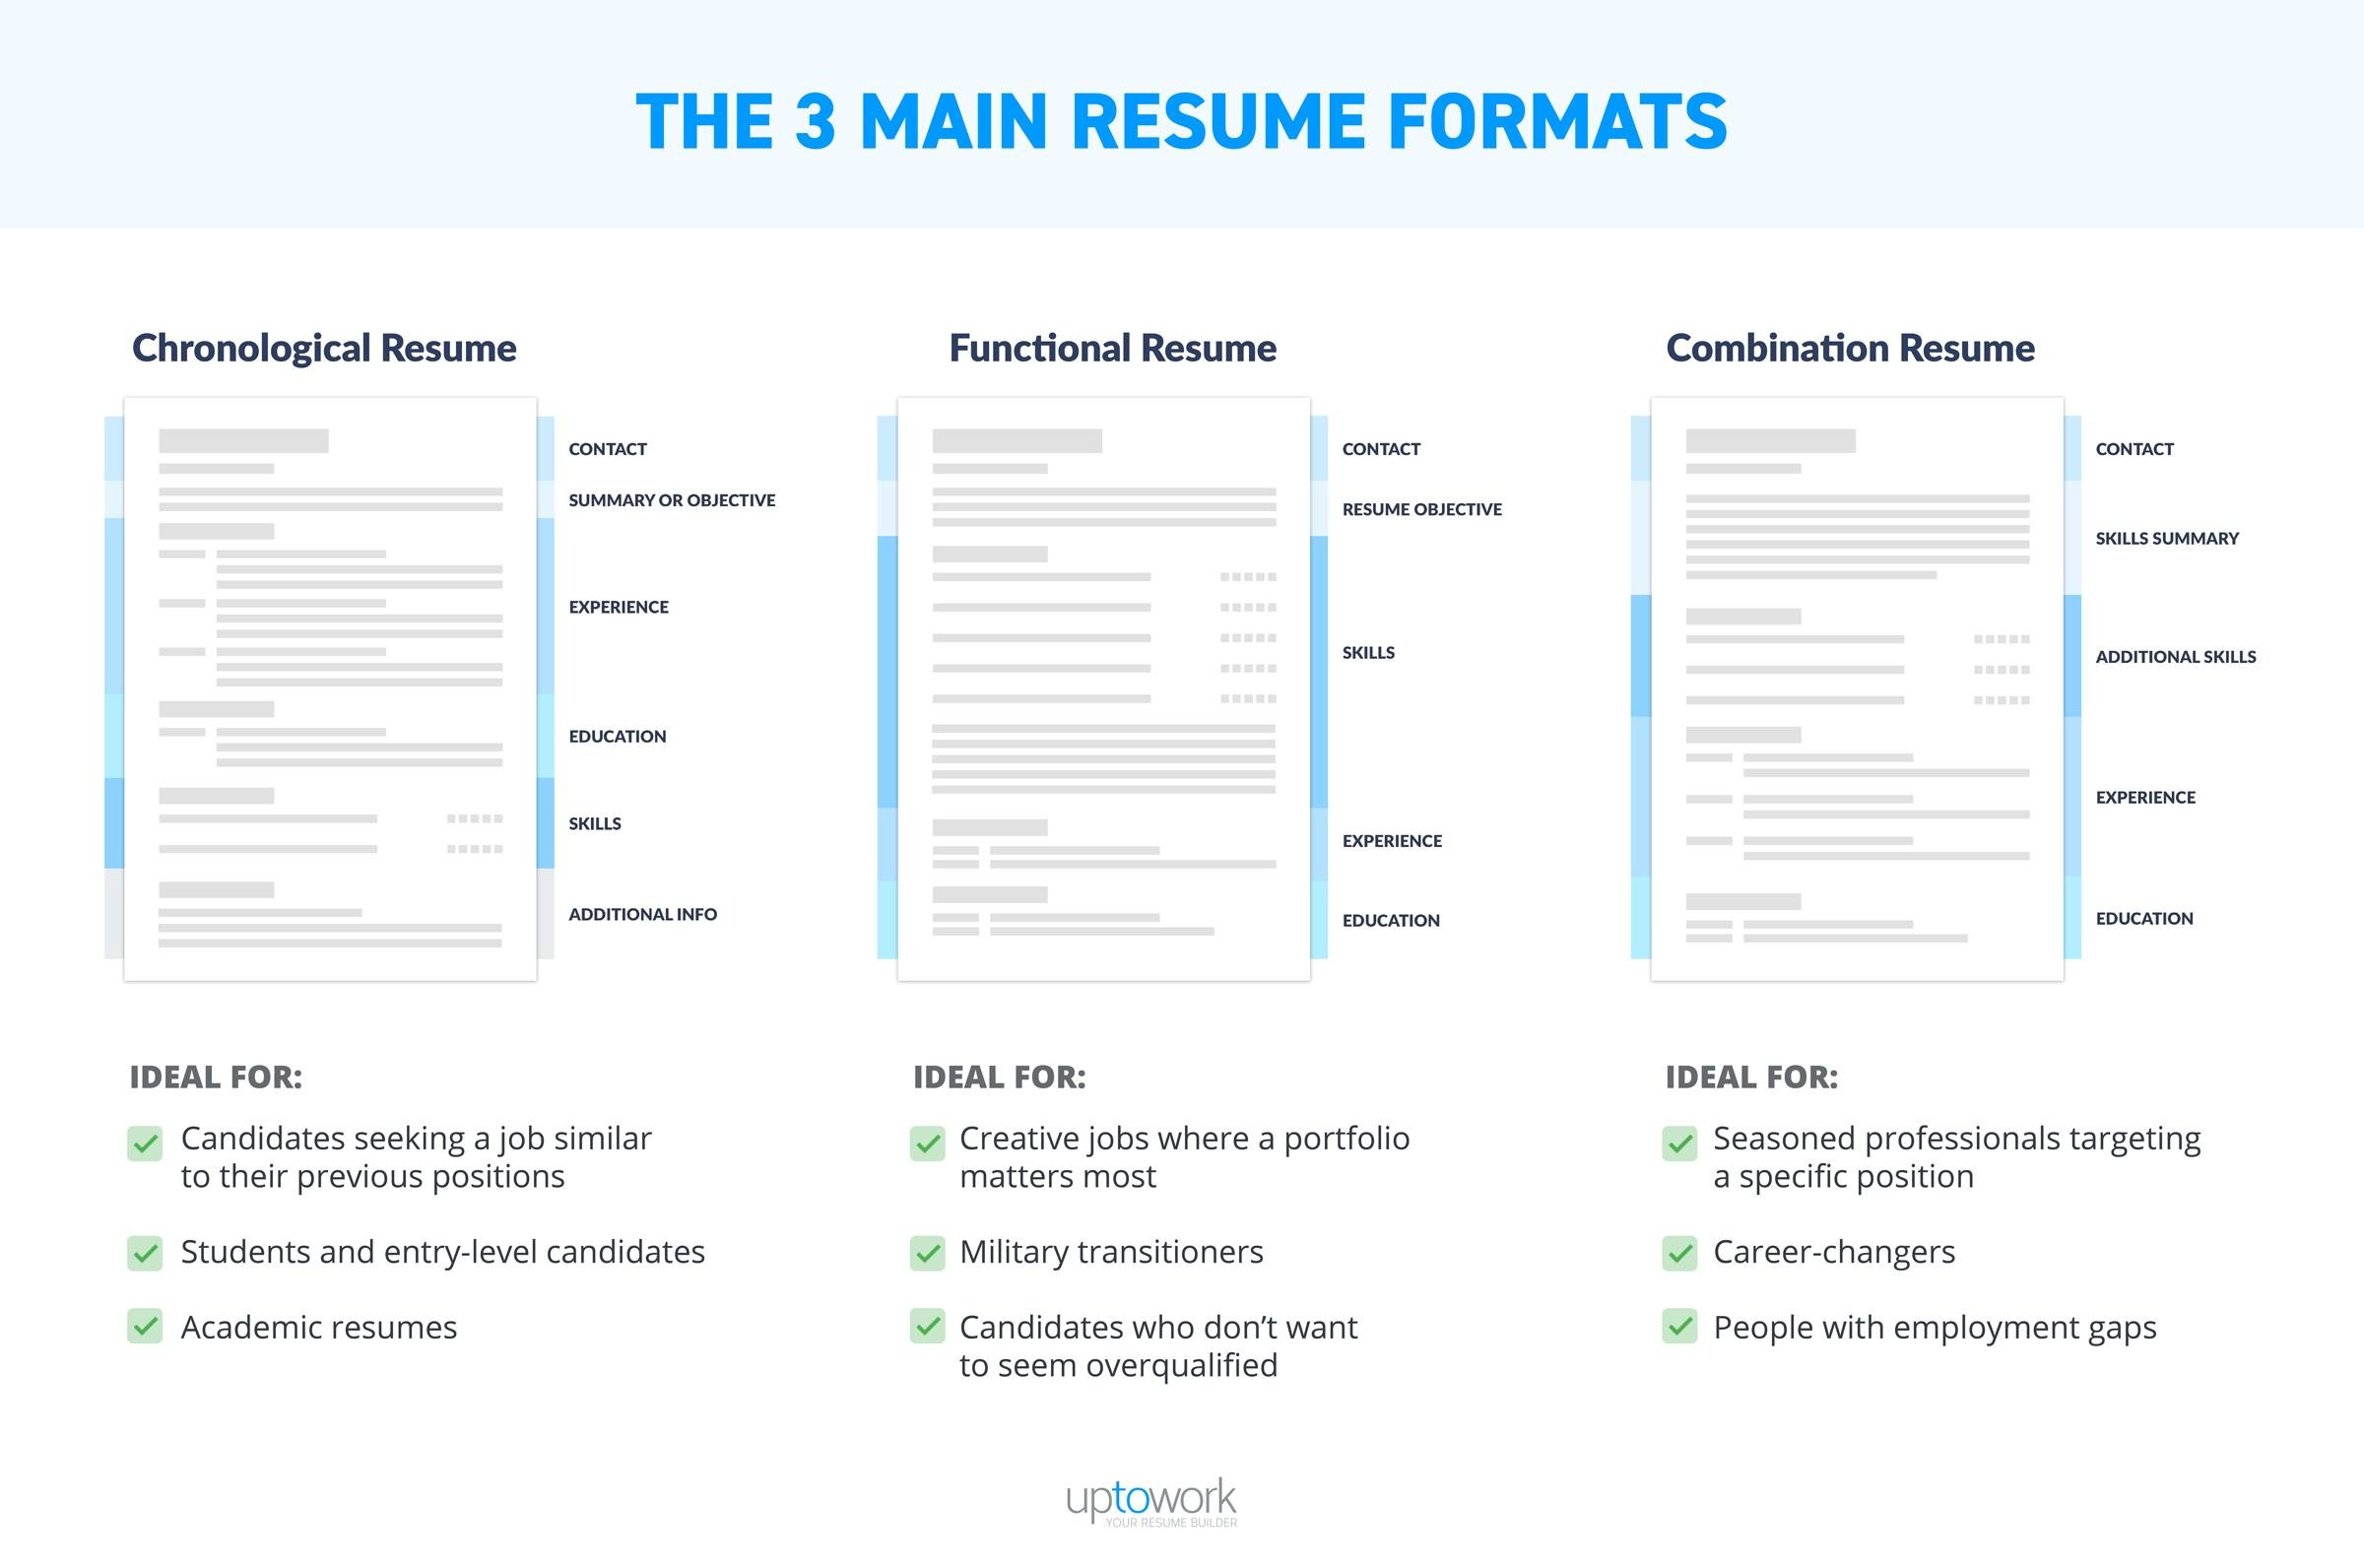 best resume format professional samples for work history example of three main formats Resume Best Resume Format For Long Work History